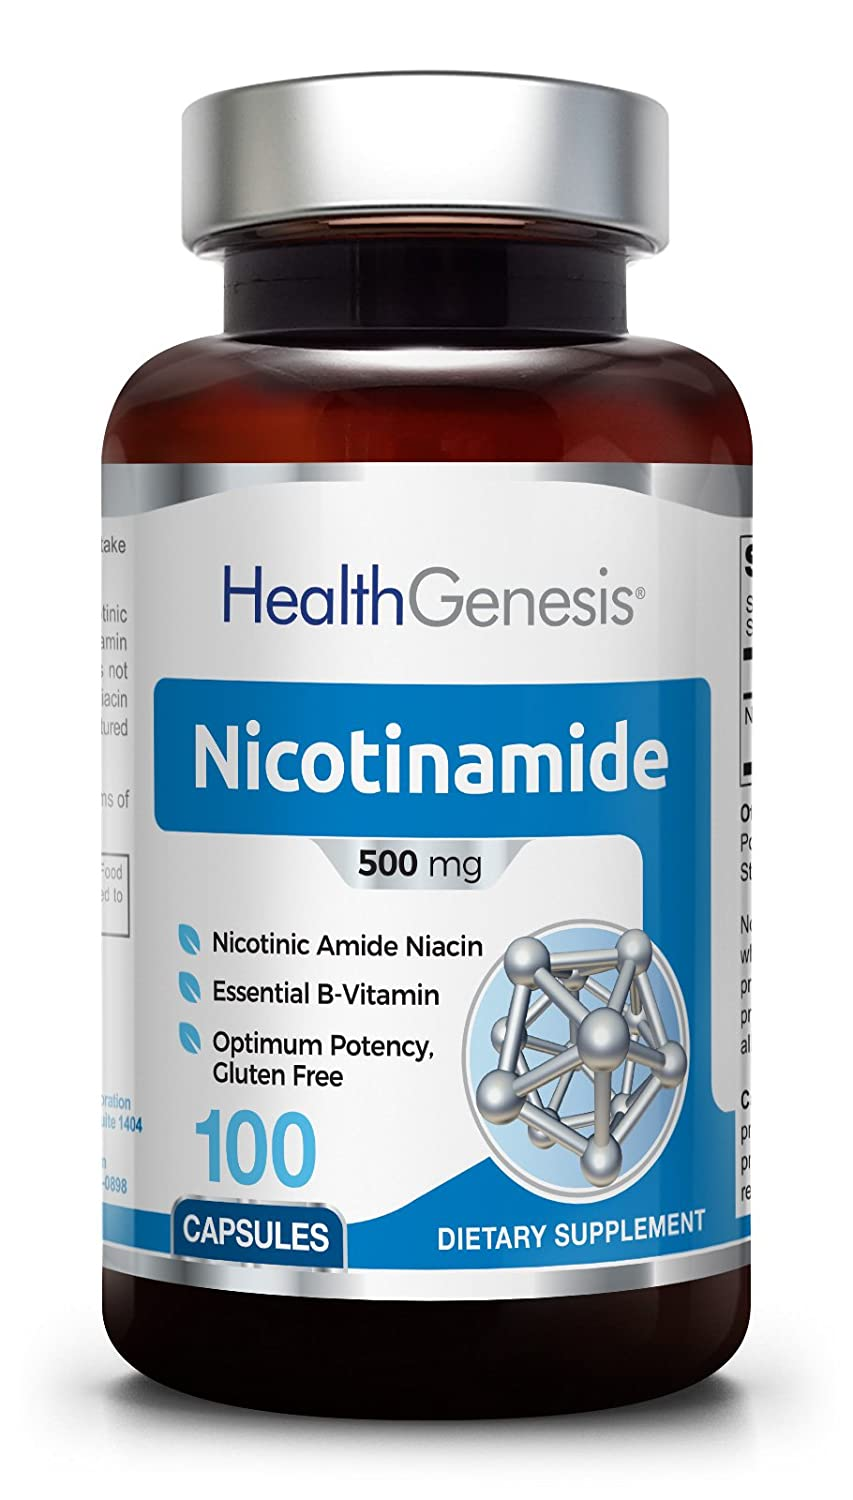 B3 Nicotinamide 500 mg 100 Capsules - Natural Flush-Free Vitamin Formula | Gluten-Free Nicotinic Amide Niacin | Supports Skin Health | Healthy Cell Repair Support